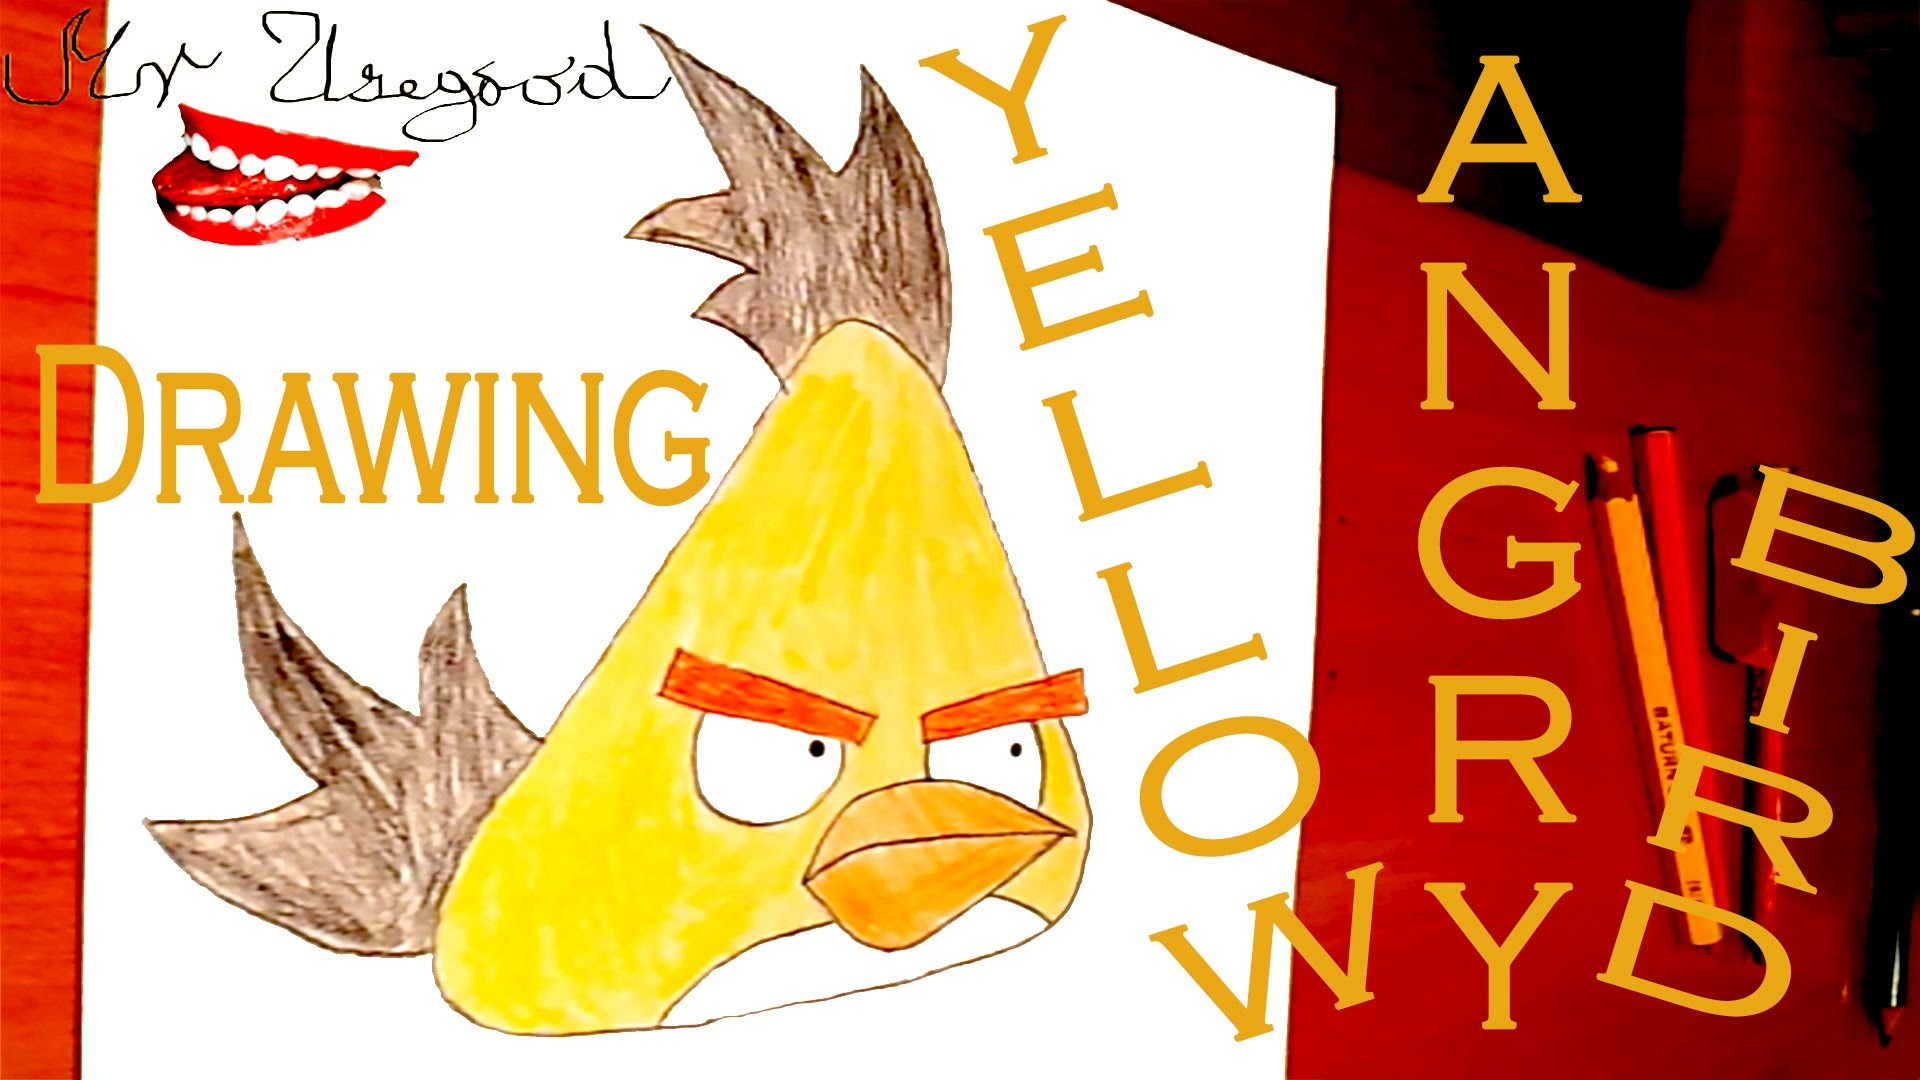 DIY How to draw Angry Birds Easy YELLOW BIRD | draw easy stuff.things but cool on paper | SPEED ART